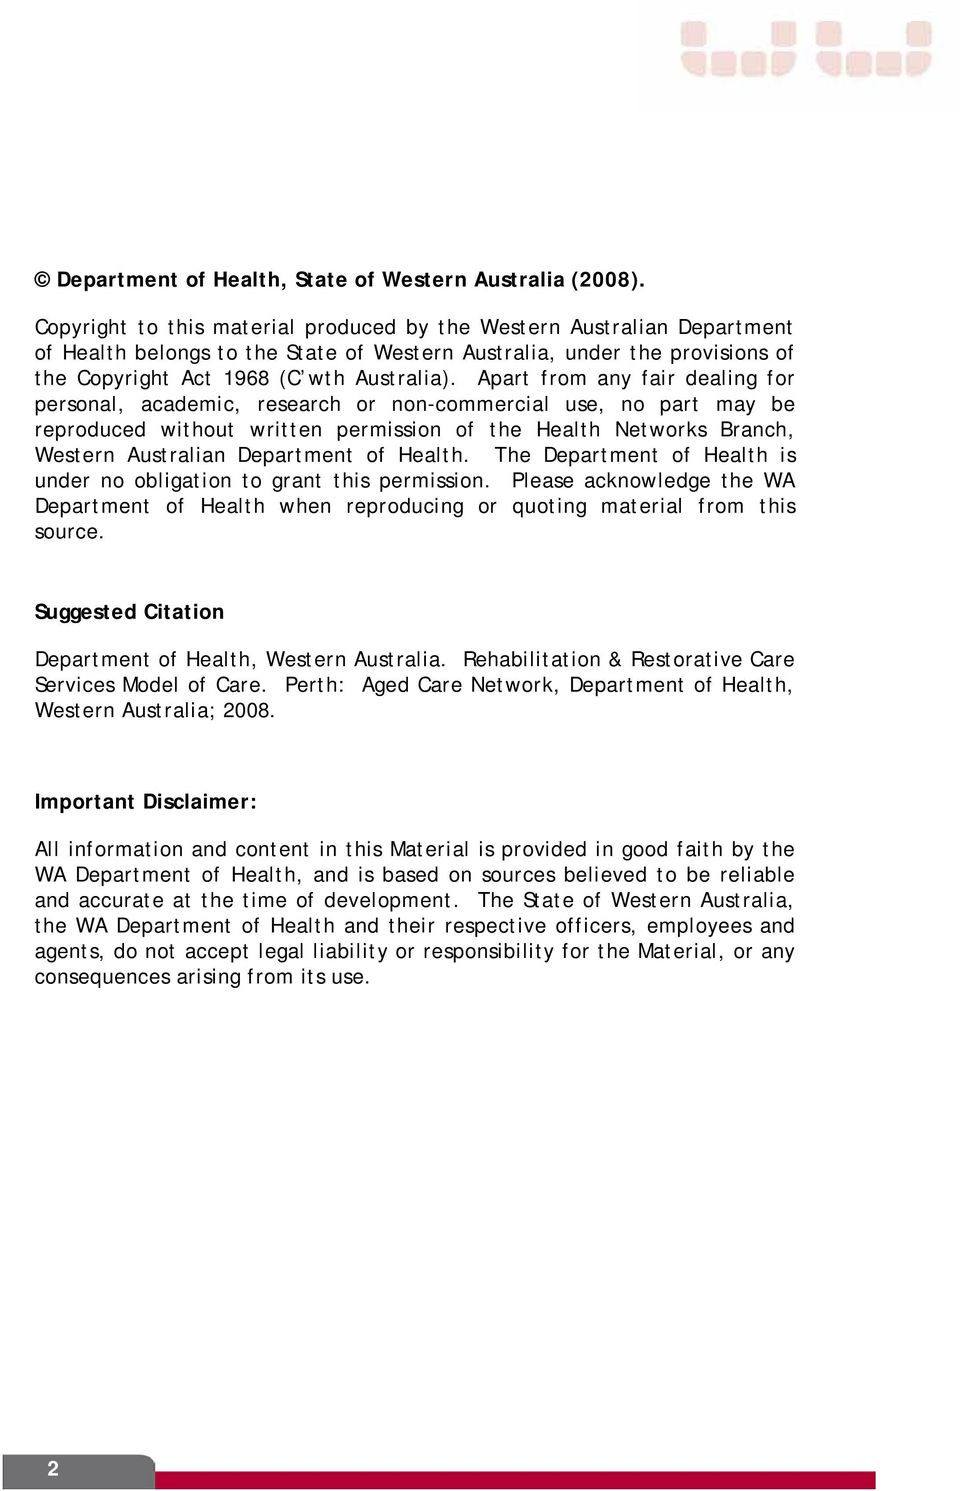 Apart from any fair dealing for personal, academic, research or non-commercial use, no part may be reproduced without written permission of the Health Networks Branch, Western Australian Department